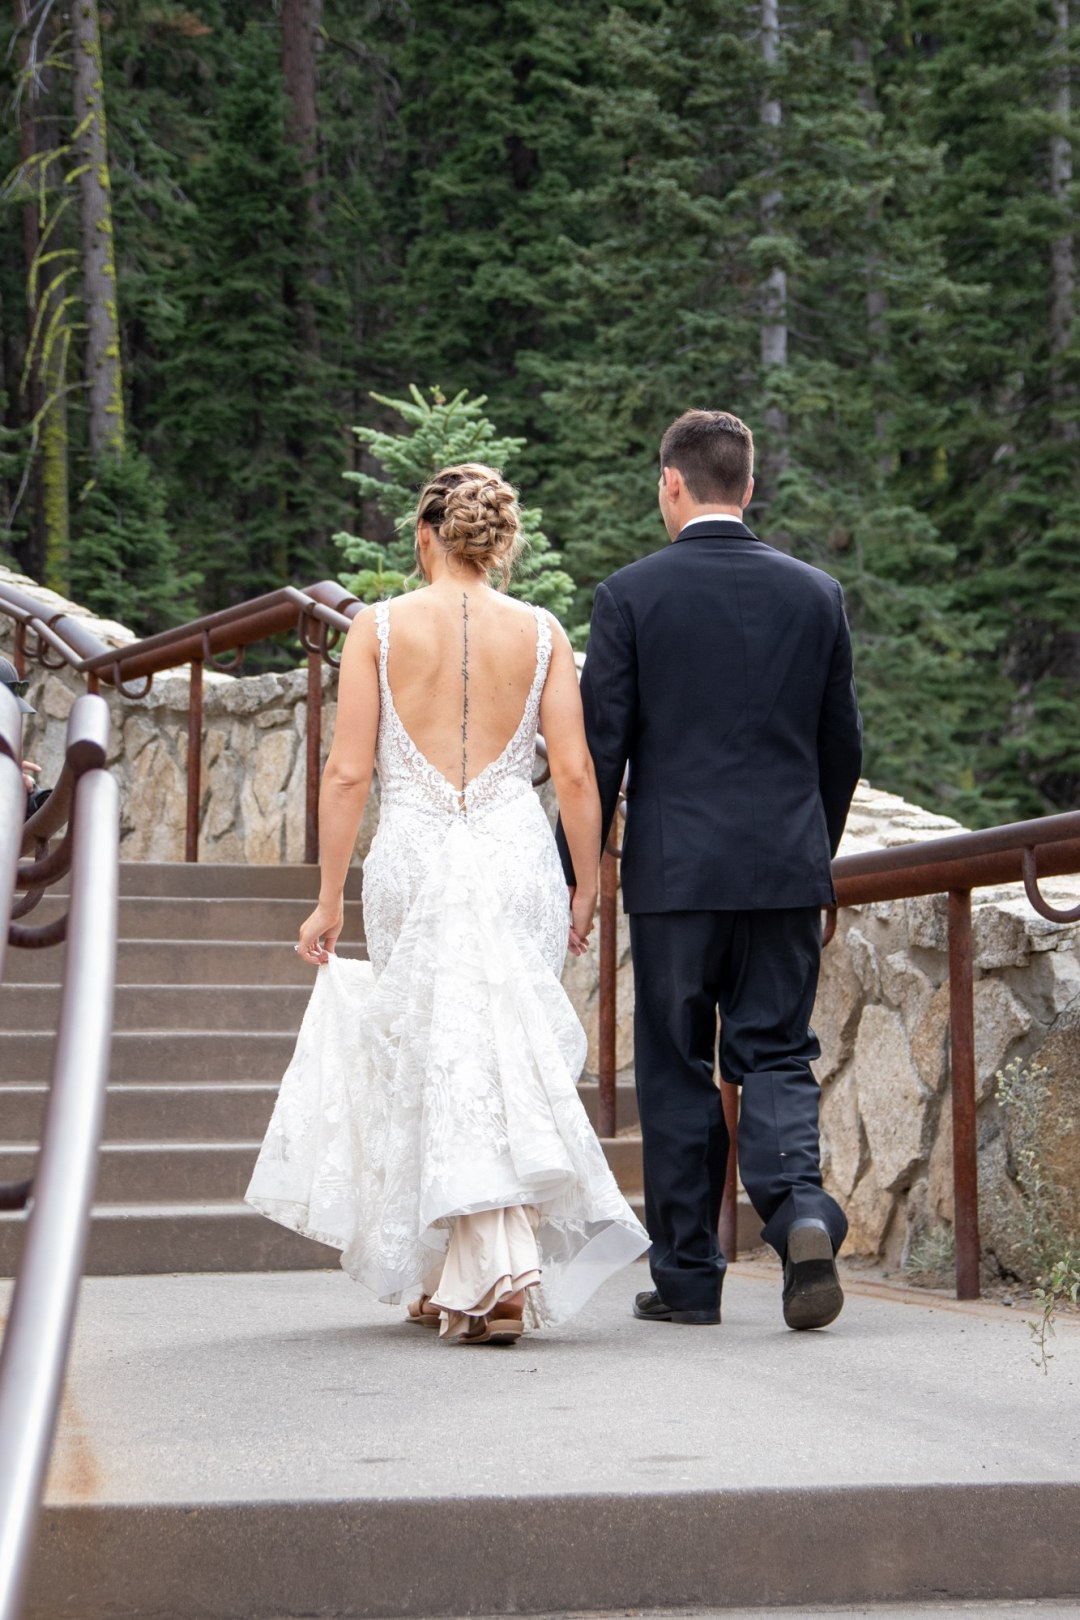 Yosemite Bride and Groom walking up the stairs at Glacier Point